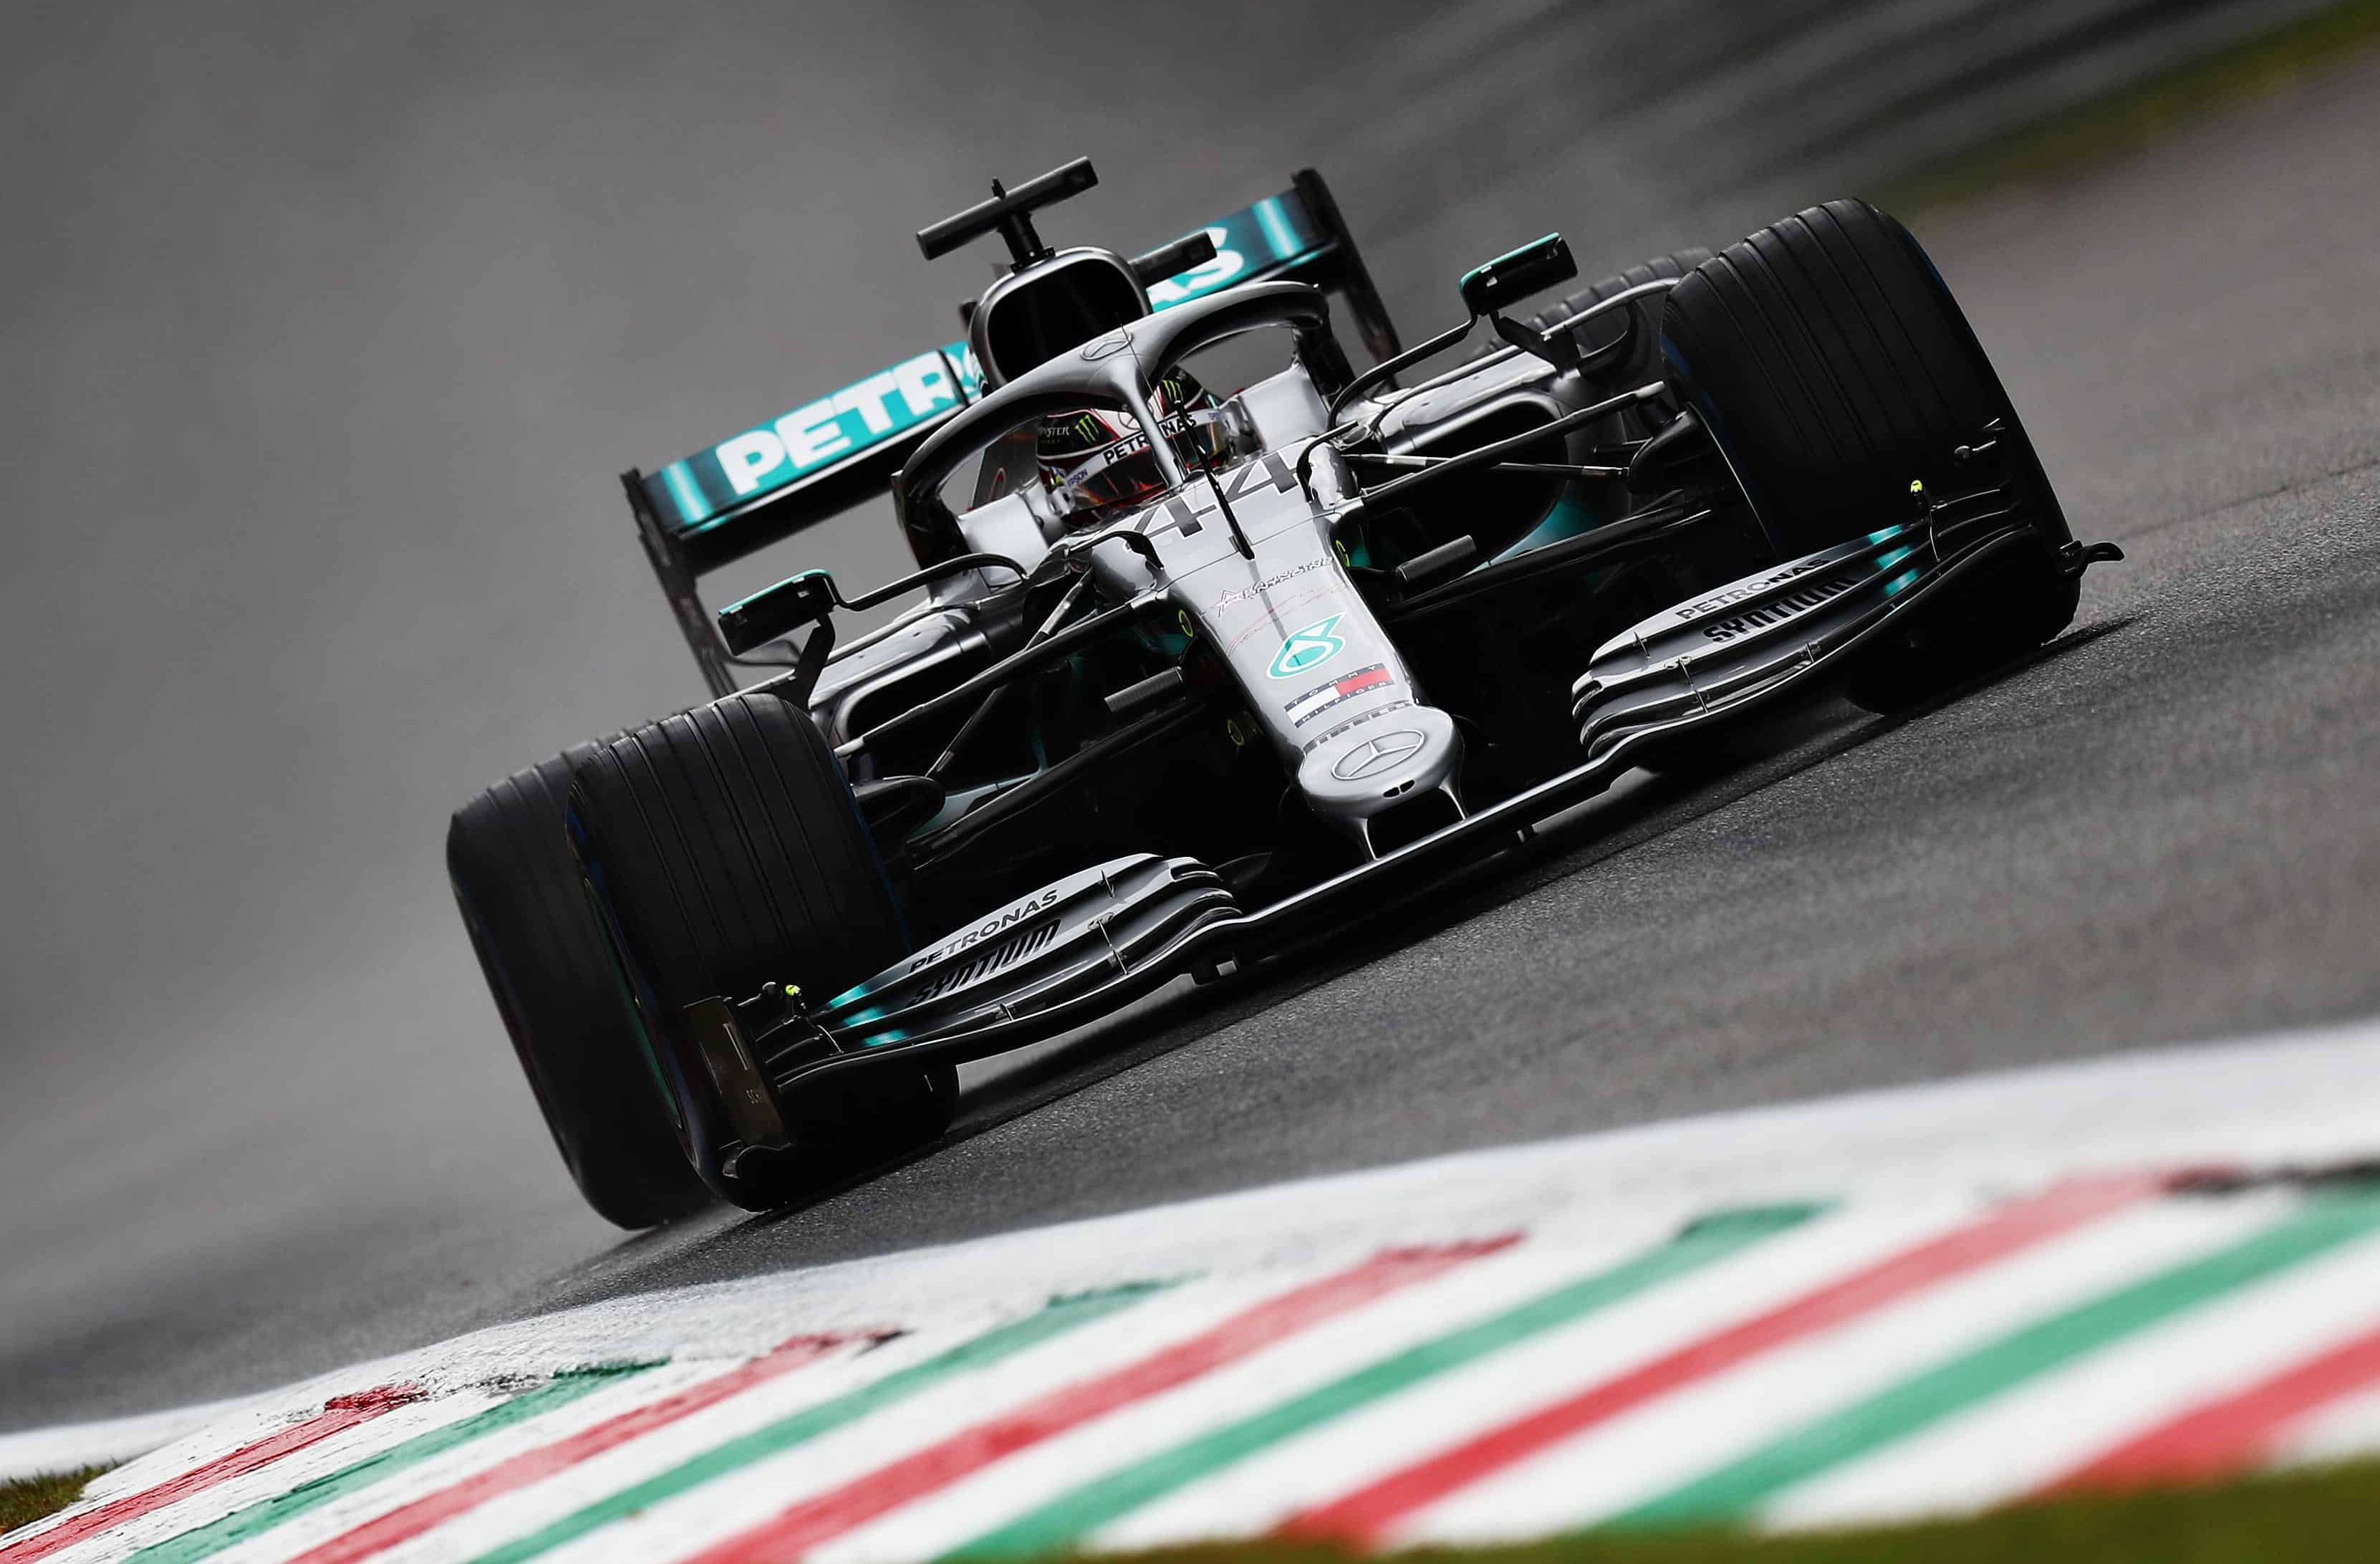 Hamilton-Mercedes-F1-W10-Italian-GP-F1-2019-Monza-low-downforce-aero-package-Photo-Sky-Sports-F1